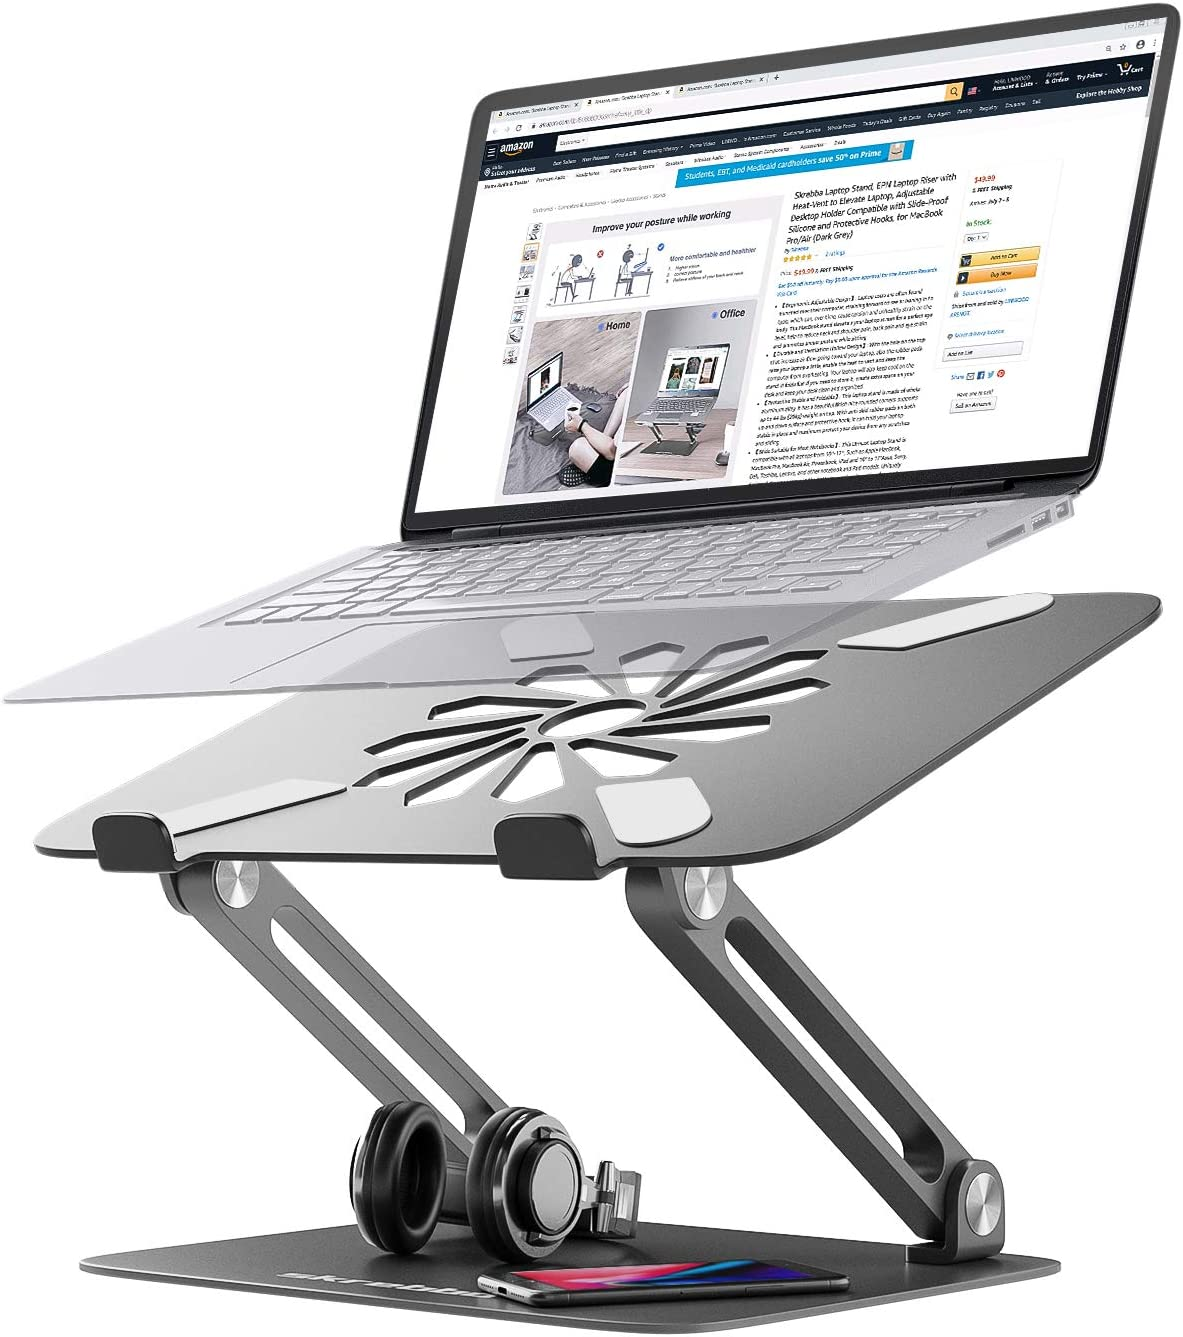 Skrebba Laptop Stand, EPN Laptop Riser with Heat-Vent to Elevate Laptop, Adjustable Height Laptop Stand Holder with Slide-Proof Silicone and Protective Hooks, for MacBook Pro/Air (Dark Grey)